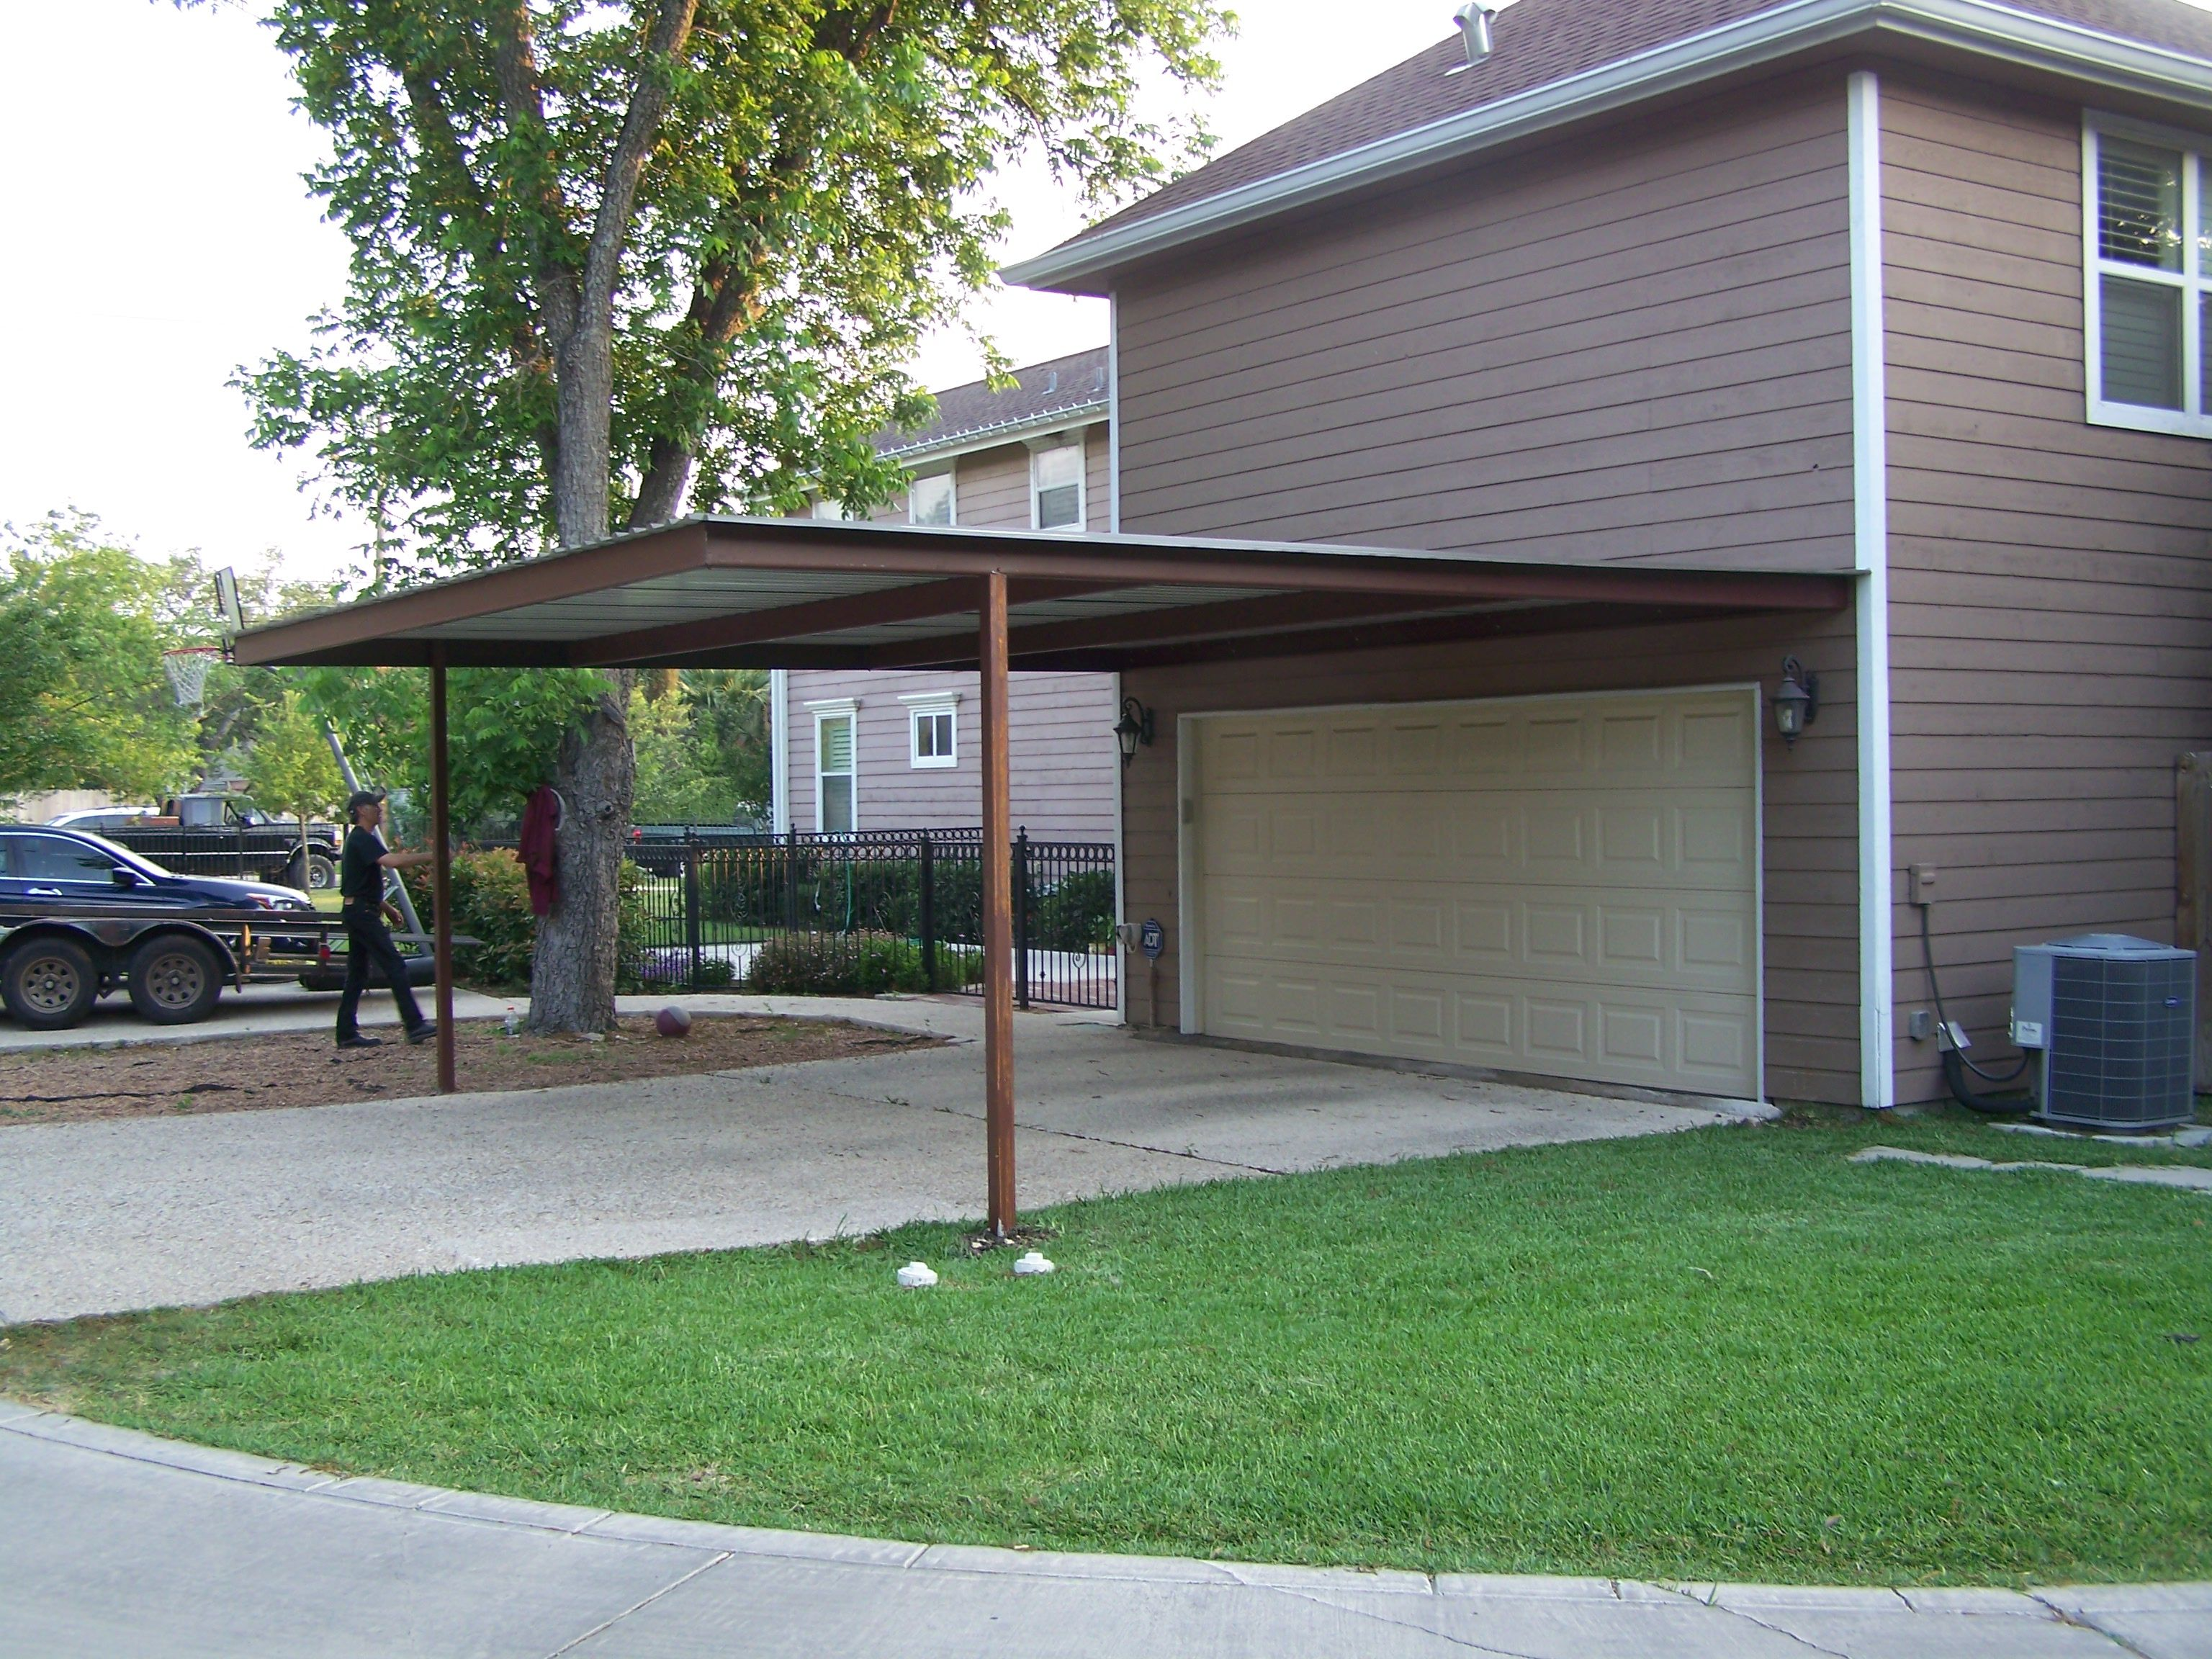 Metal Carports Attached To House - Architectural Designs on mobile home dining area ideas, front porch for mobile homes ideas, mobile home chimney ideas, mobile with porches, mobile home patio ideas, mobile home bedroom ideas, mobile home family room ideas, mobile home carport kits, mobile home laundry room ideas, mobile home fence ideas, mobile home driveway ideas, mobile home office ideas, mobile home attached carports, mobile home storage ideas, mobile home living ideas, mobile home flooring ideas, mobile home pantry ideas, mobile home garden ideas, mobile home carports and porches, mobile home bath ideas,